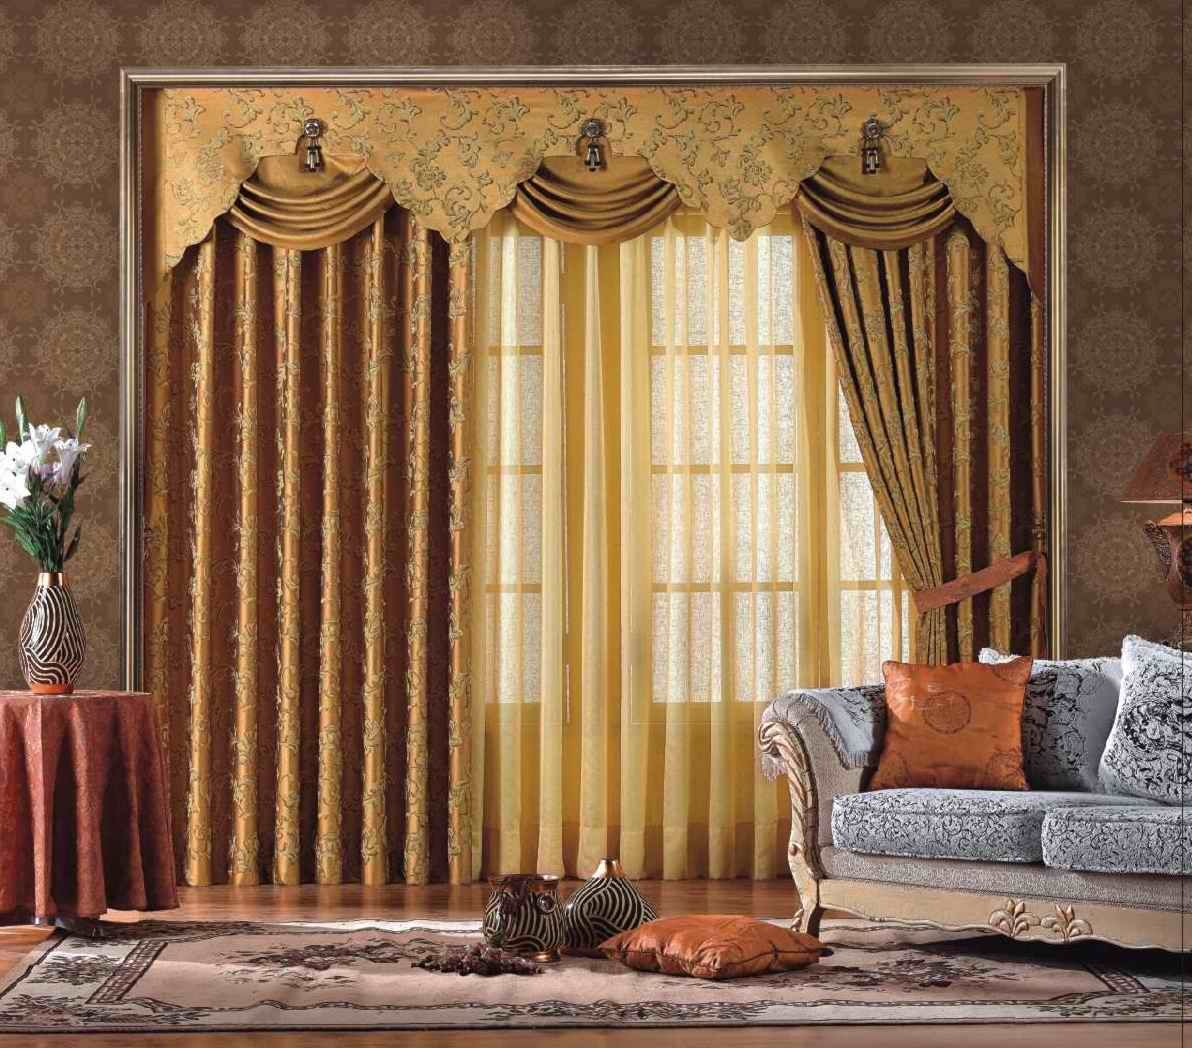 Living Room Curtain Design Best Architecture  Living Room Curtains With Valance Sutntljr Gorgeous Inspiration